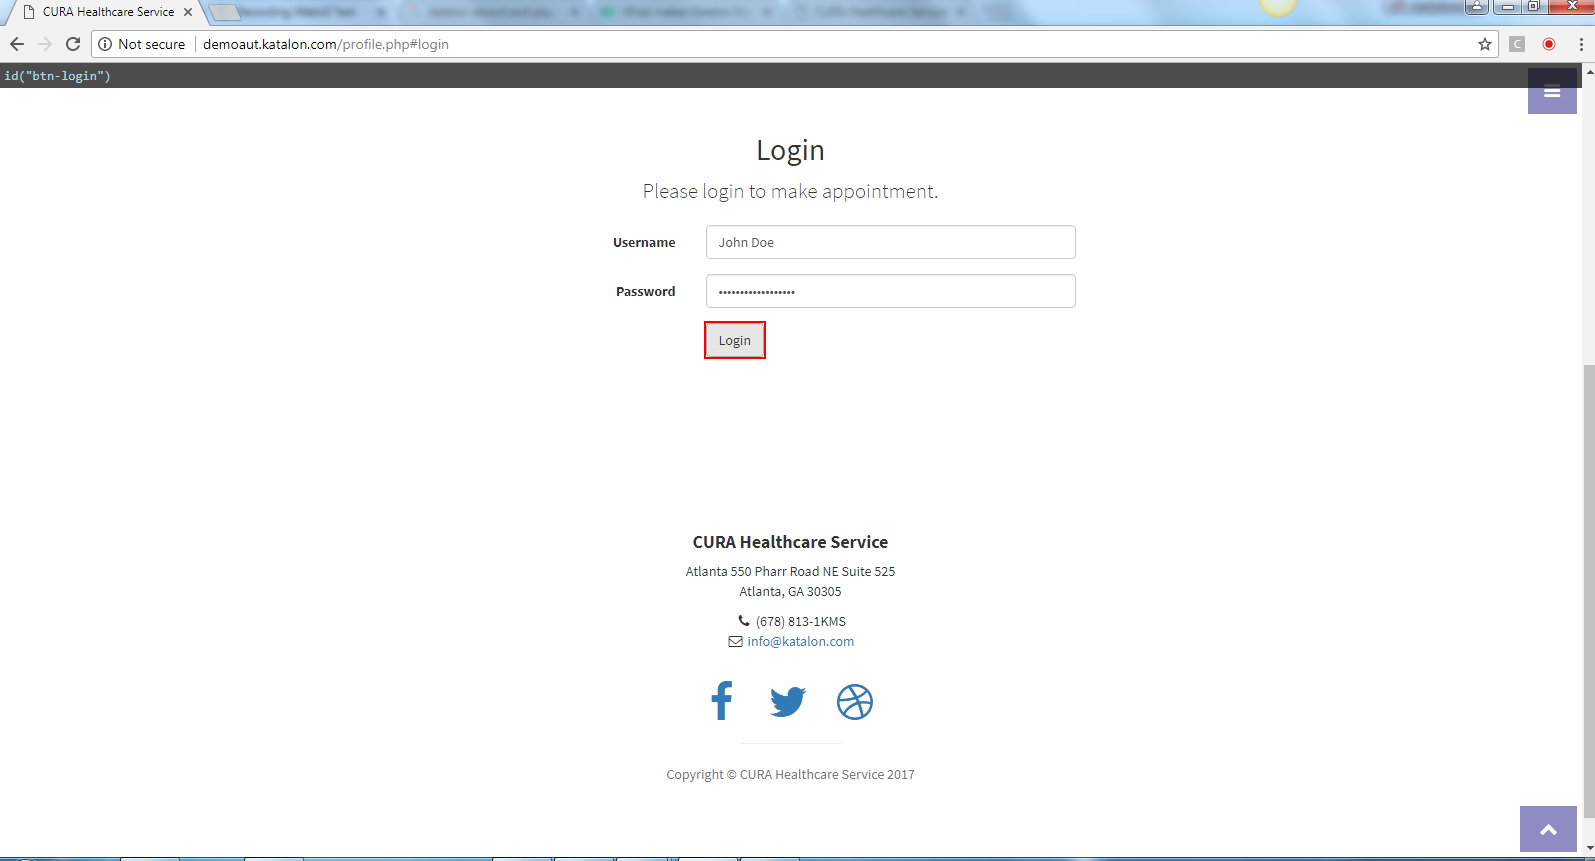 move the cursor to Login Button and click on Login Button